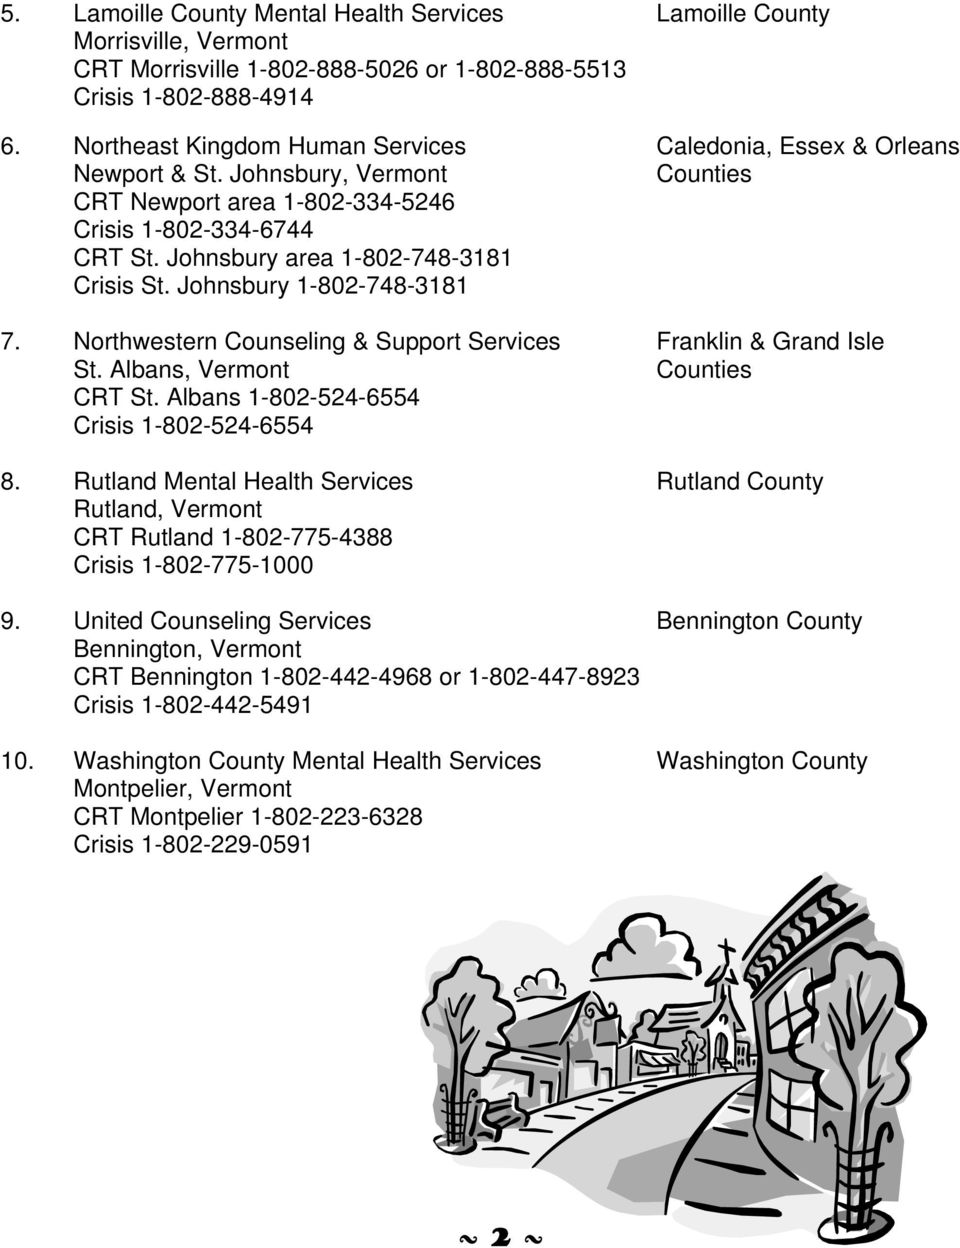 Johnsbury area 1-802-748-3181 Crisis St. Johnsbury 1-802-748-3181 7. Northwestern Counseling & Support Services Franklin & Grand Isle St. Albans, Vermont Counties CRT St.